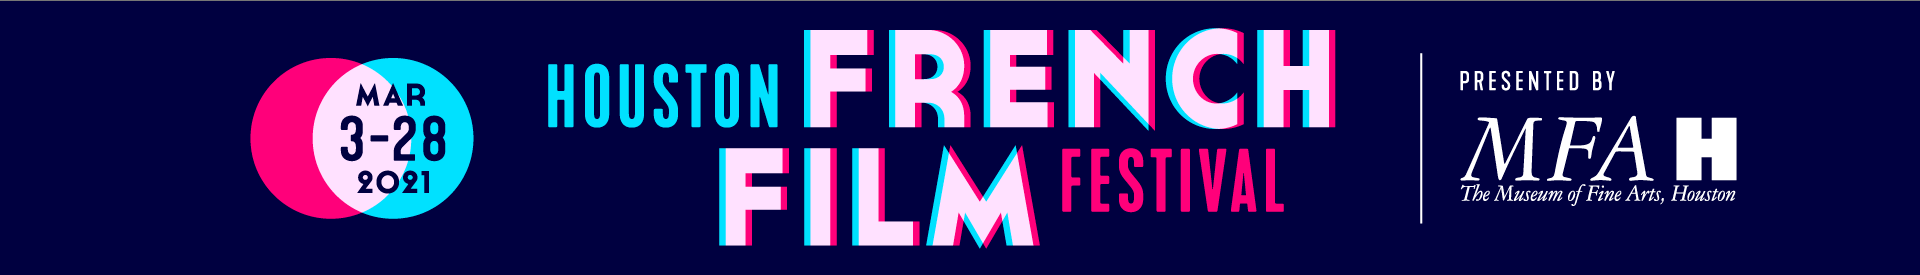 Houston French Film Festival